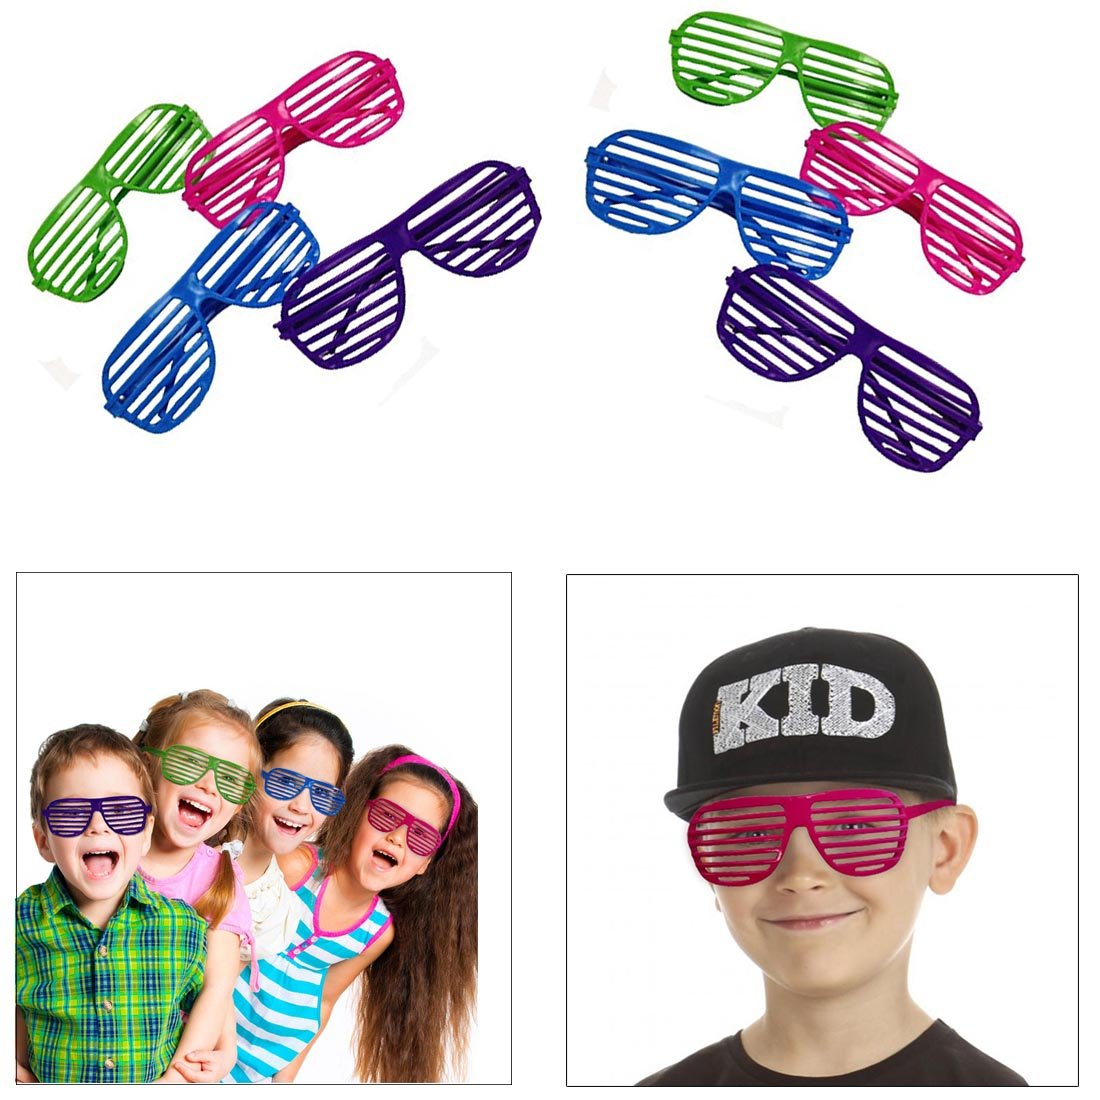 dazzling toys 36 Pack 80's Slotted Toy Sunglasses Party Favors Costume - Pack of 36 - Assorted Colors